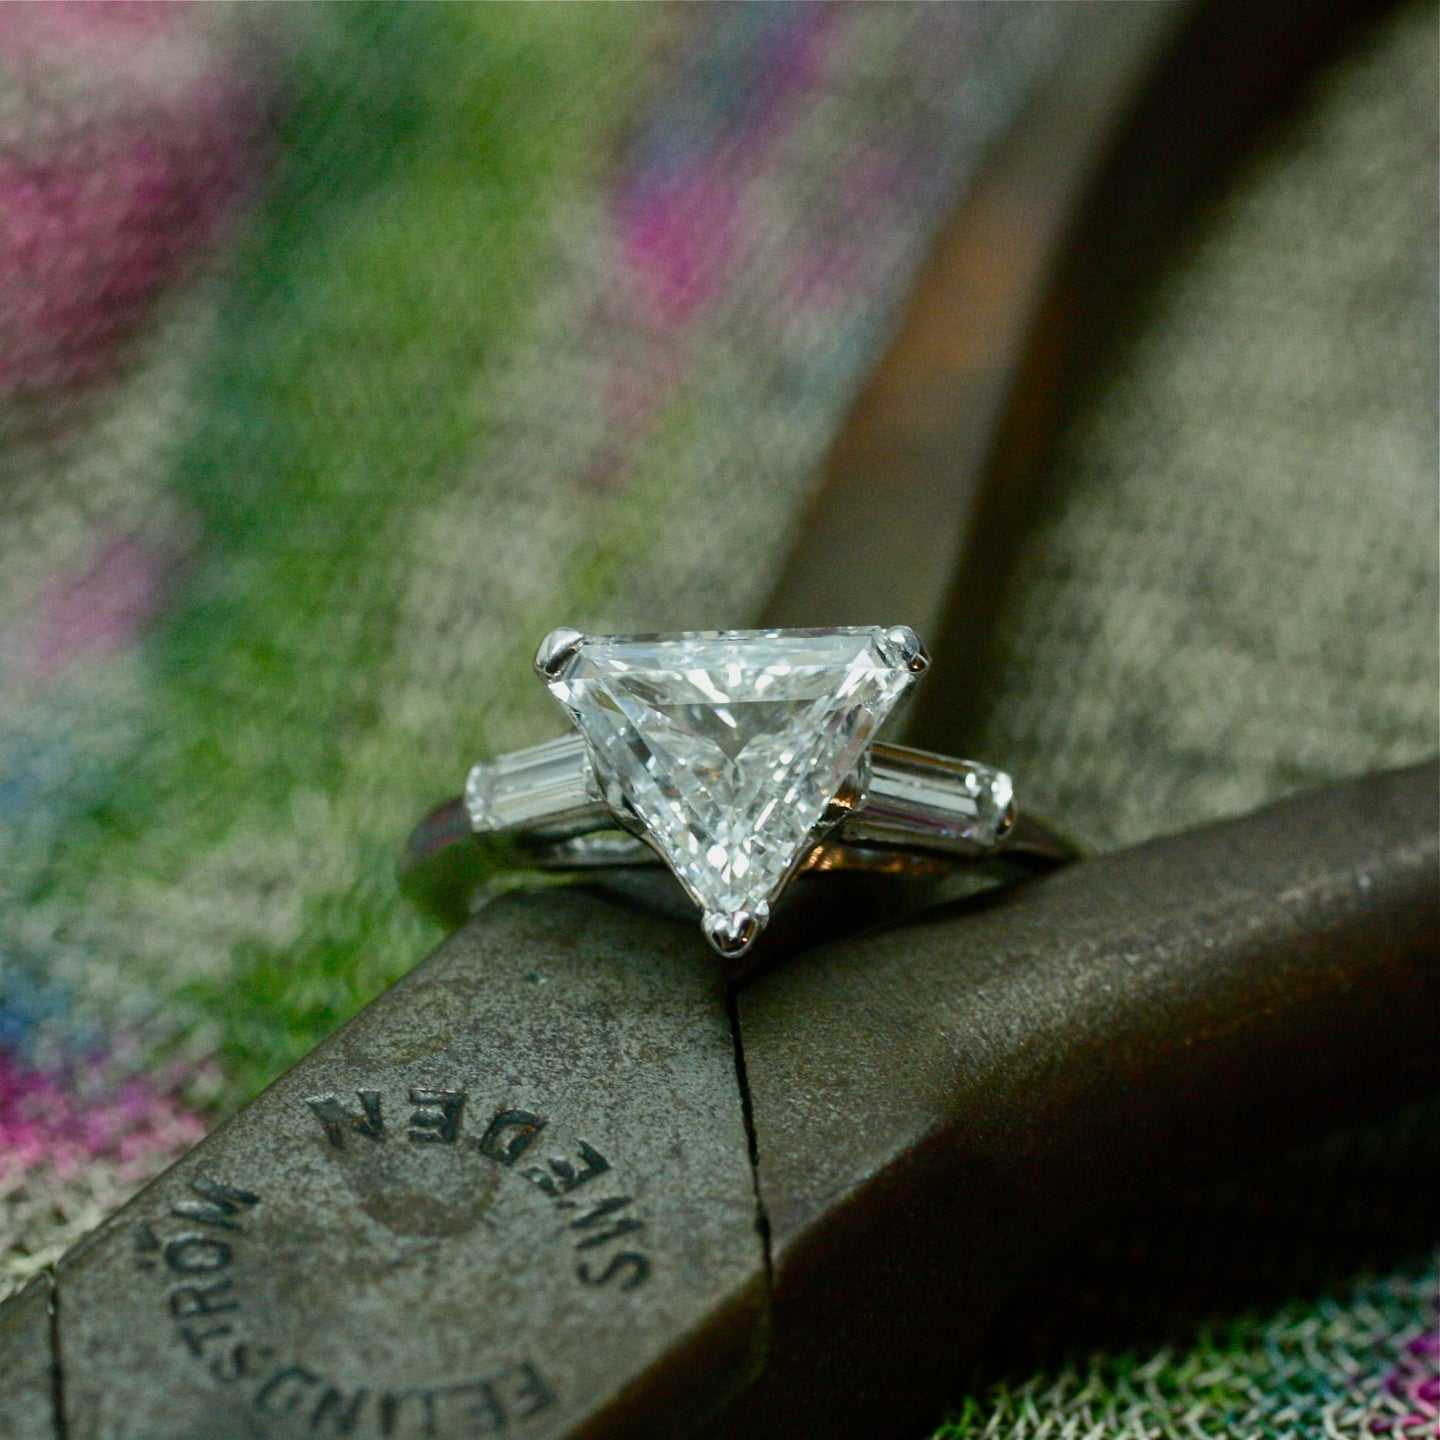 1950s handmade platinum triangle cut diamond engagement ring